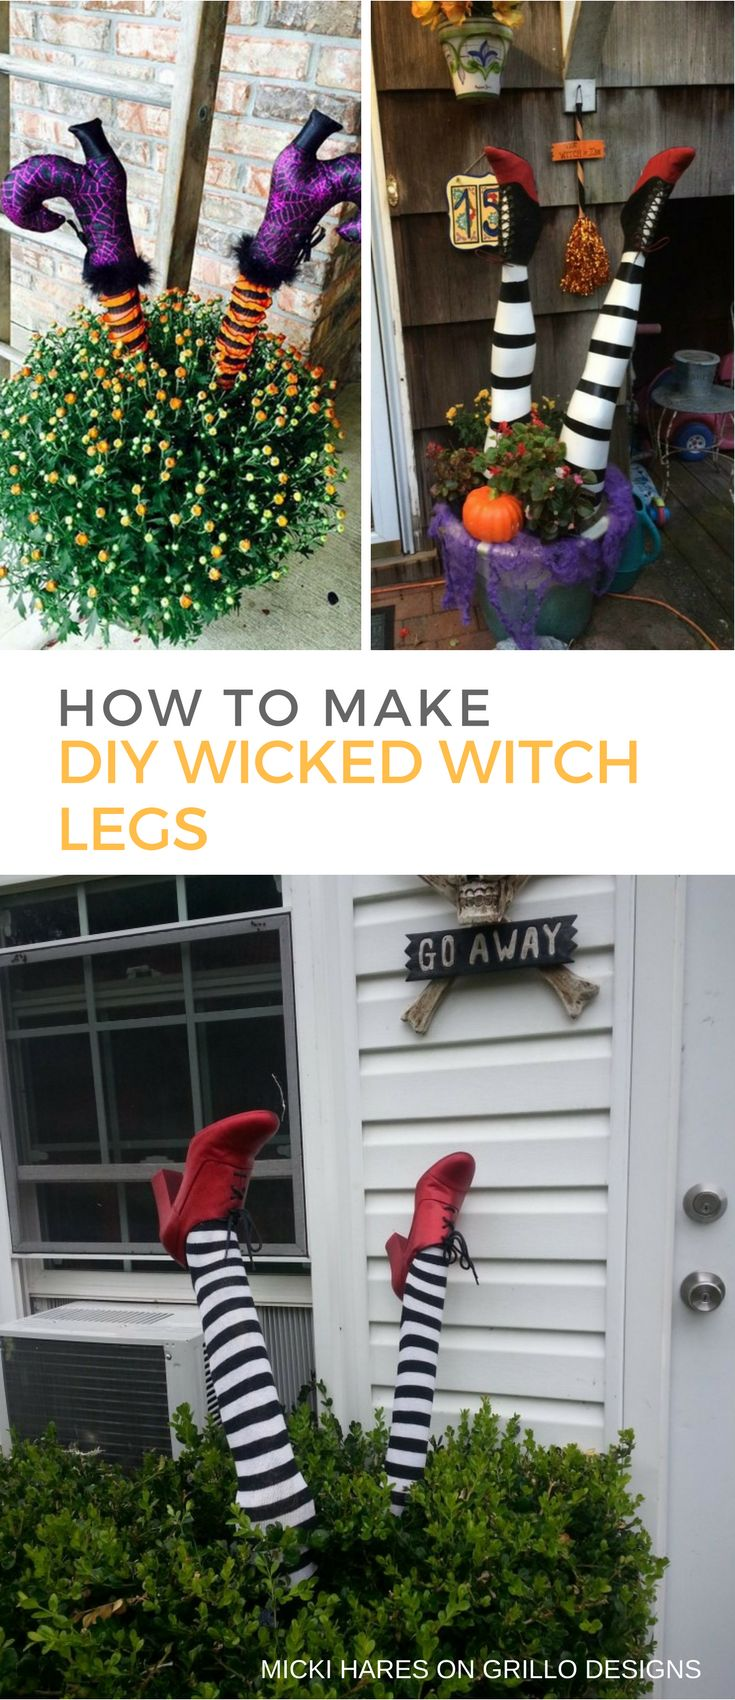 These DIY wicked witch legs are the perfect freaky decor for Halloween. They are…